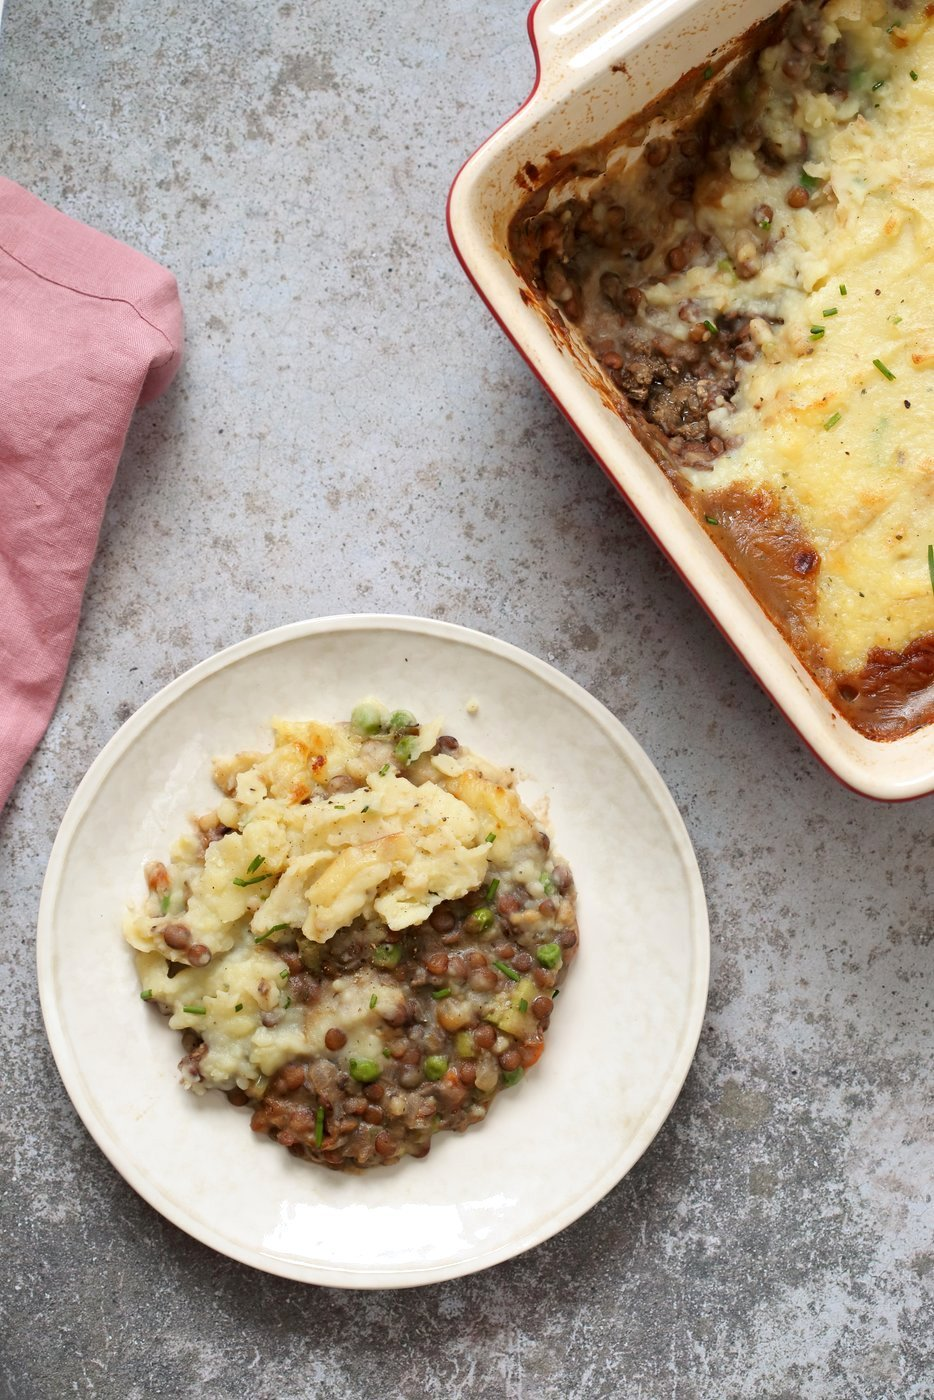 Vegan Shepherd's Pie - Mushroom and Lentil Shepherdless Pie with Gravy and Garlic mashed potatoes. #Vegan #Glutenfree #Recipe. Can be soy-free. #veganricha | VeganRicha.com